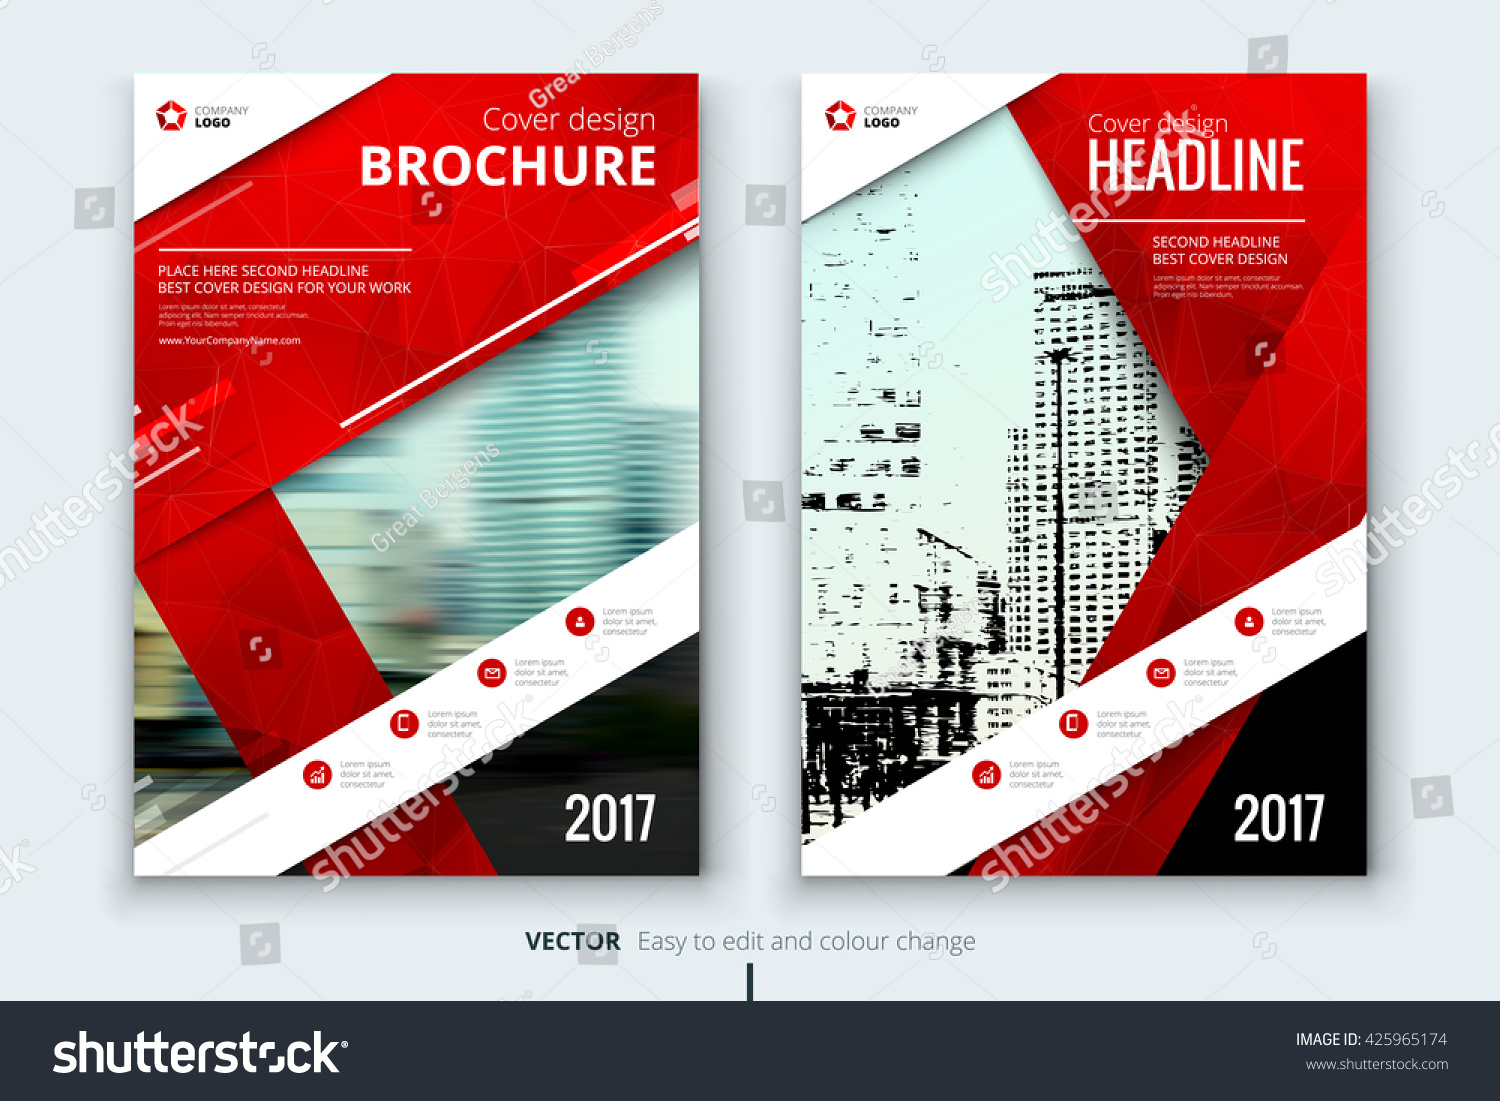 red cover design annual report catalog stock vector 425965174 red cover design for annual report catalog or magazine book or brochure booklet